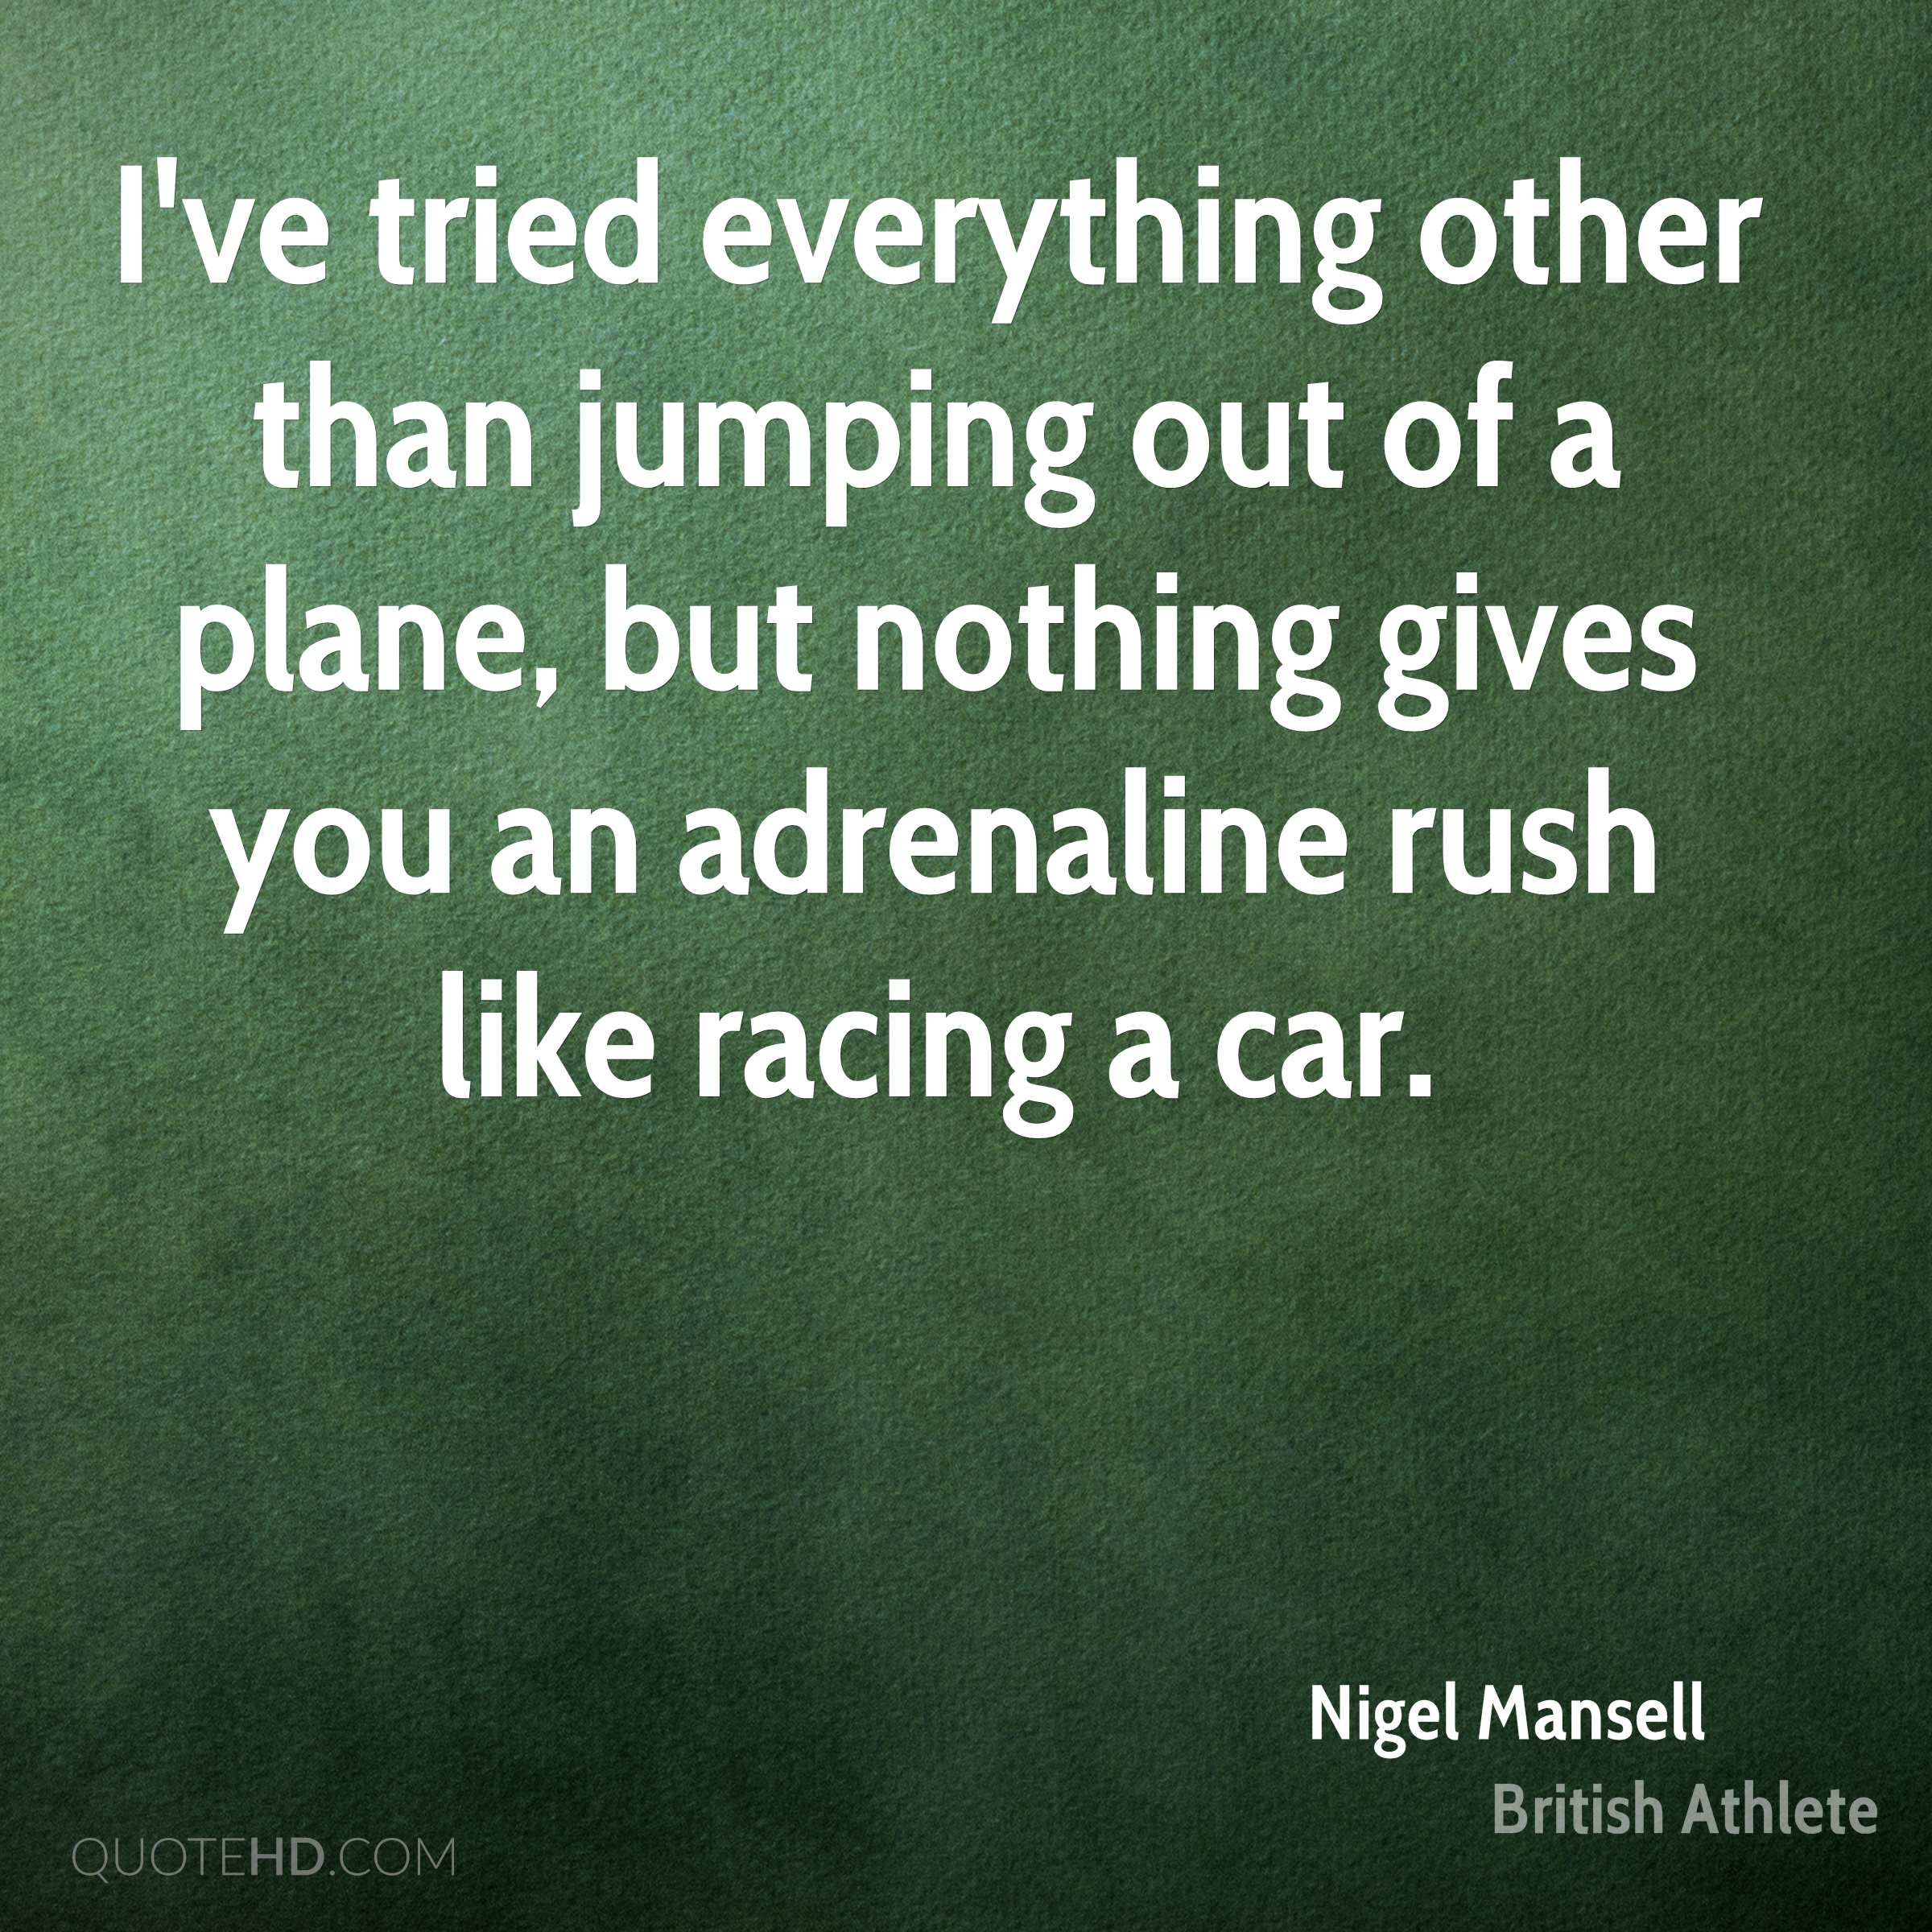 I've tried everything other than jumping out of a plane, but nothing gives you an adrenaline rush like racing a car.